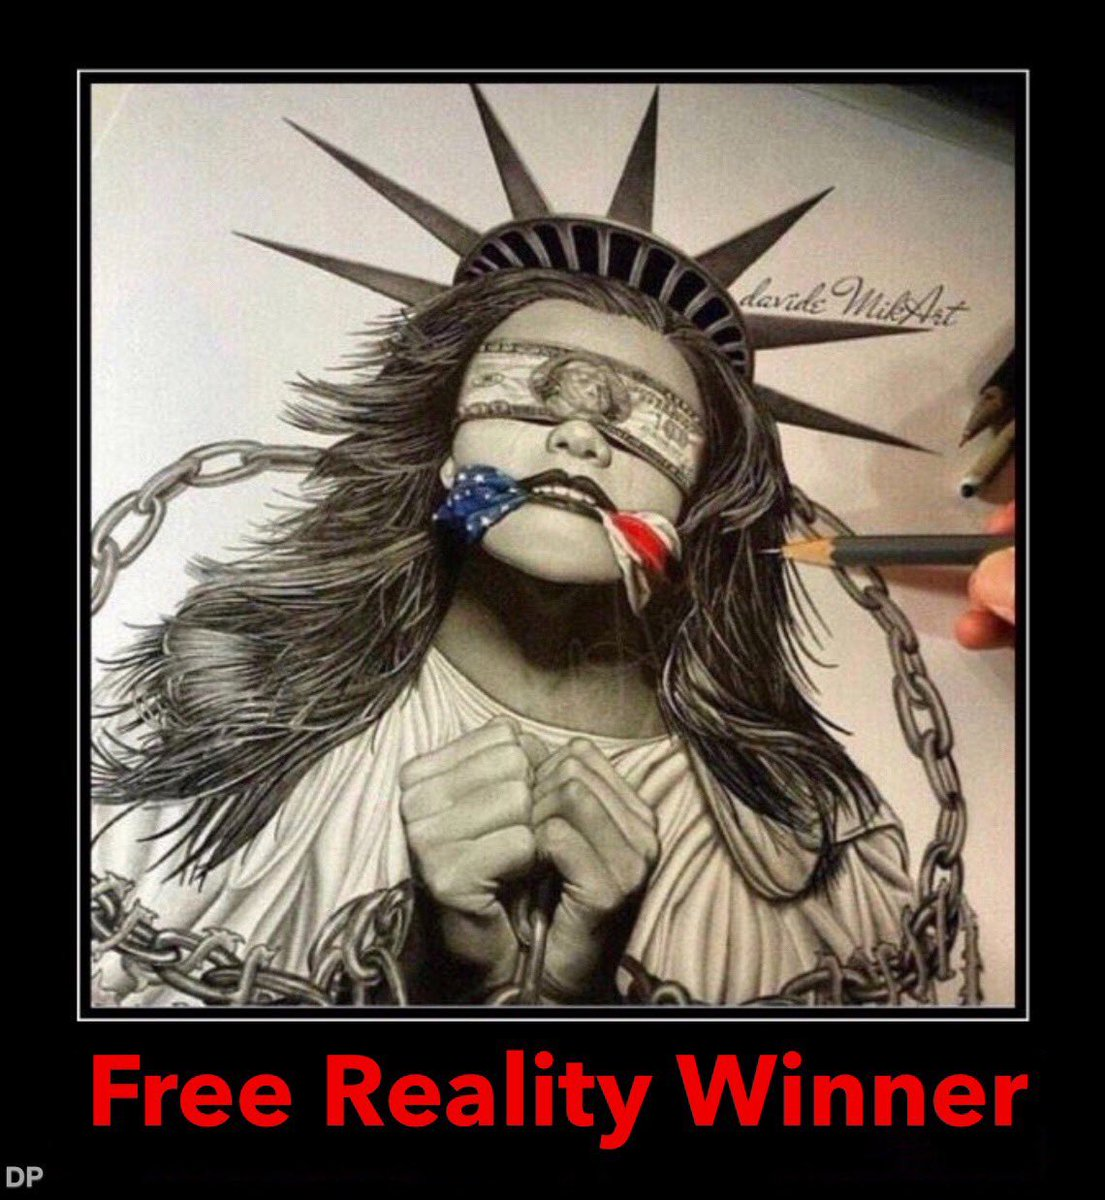 Free #Whistleblower #RealityWinner now. She sits in prison while Trump pardons crooks, thugs and thieves. Enough is a damn enough.